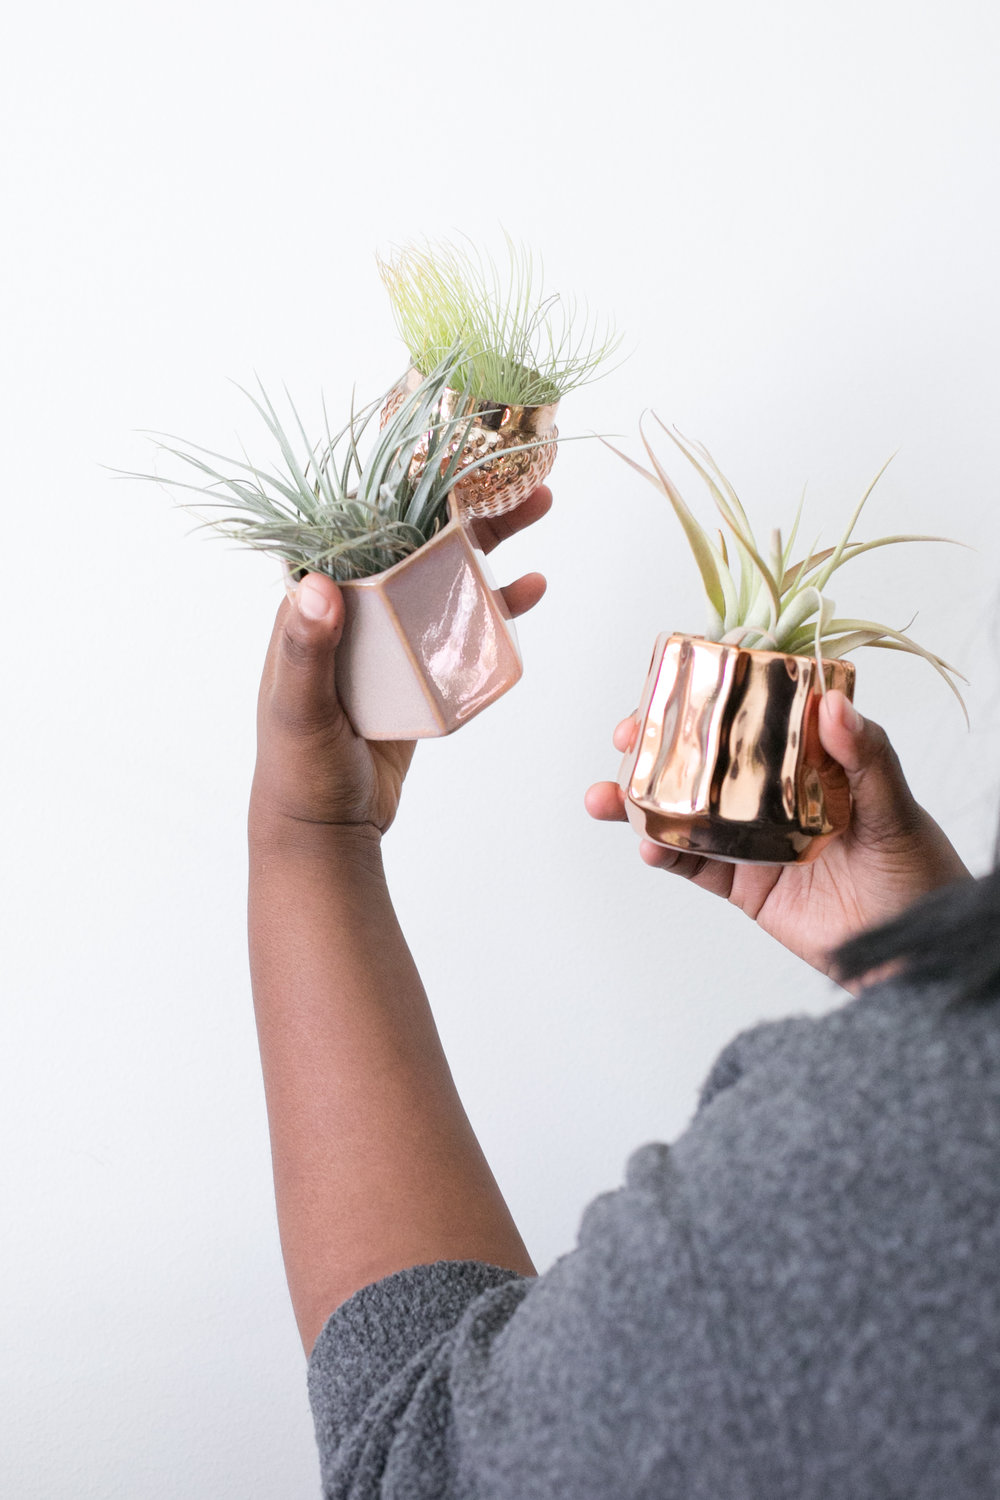 We have loads of fun accessories for air plants, such as stands, dishes and cups.  Stop by the store to pick some out.